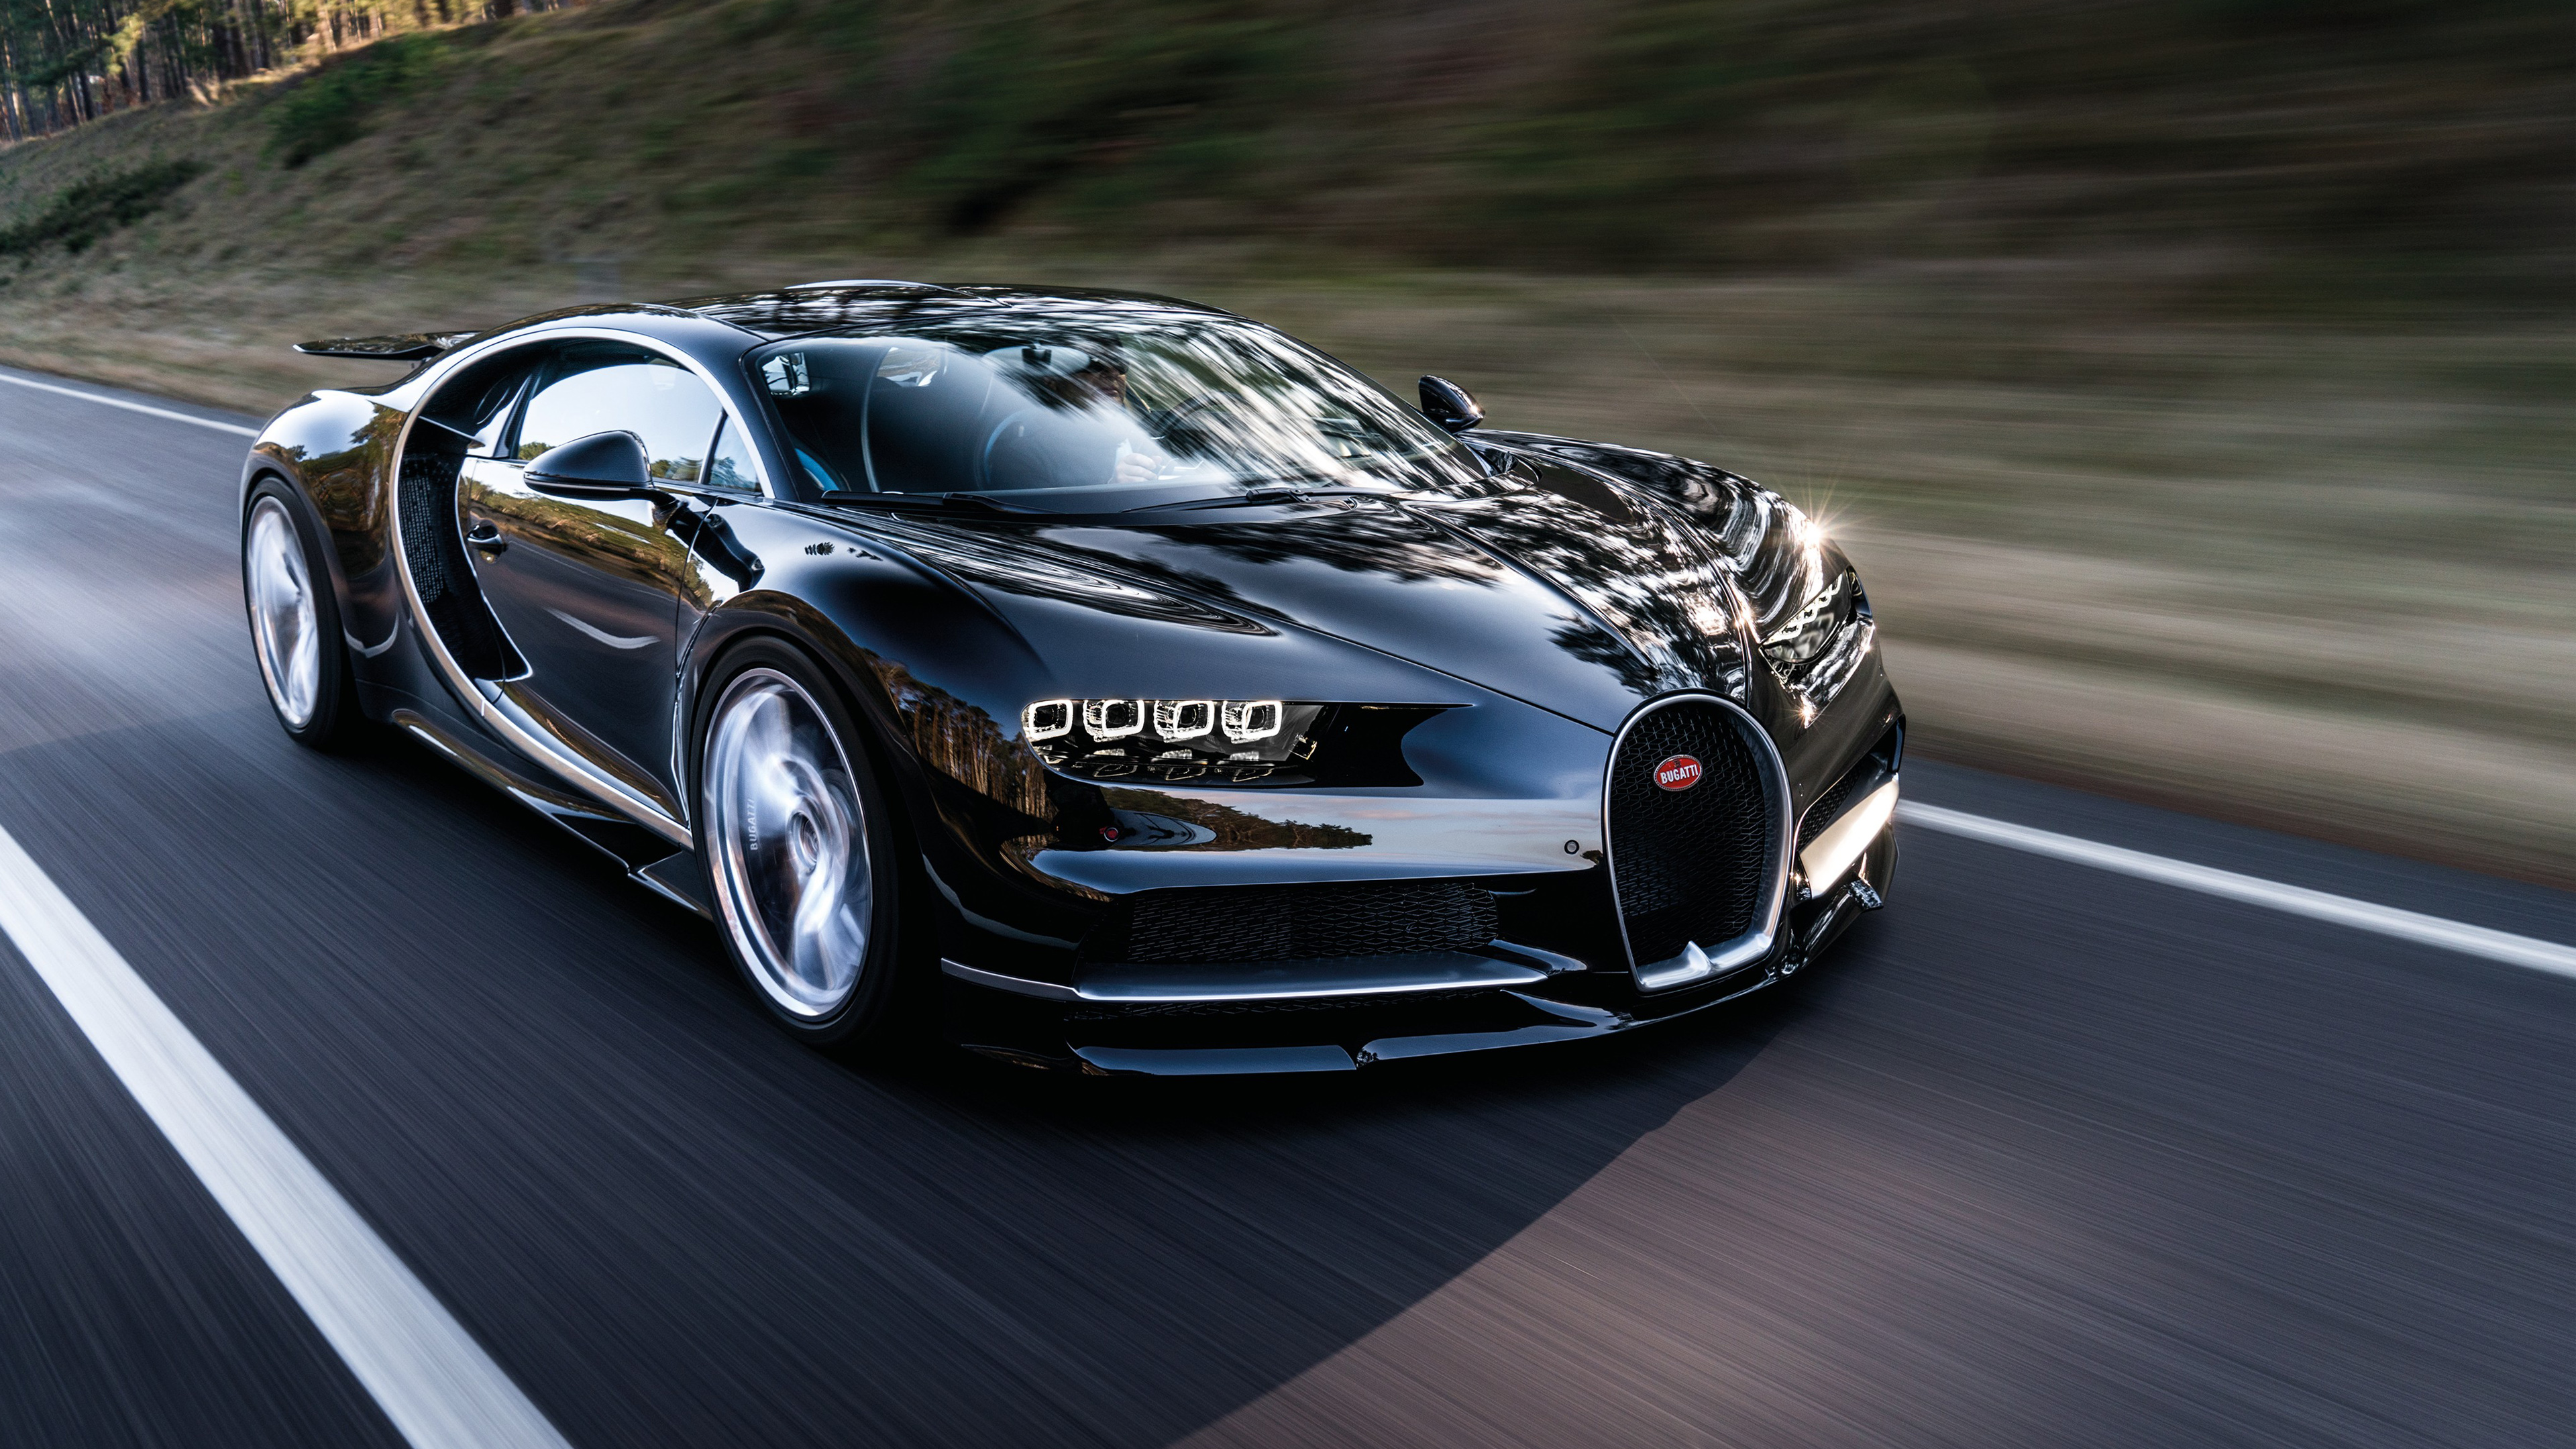 2017 bugatti chiron geneva auto expo wallpaper hd car wallpapers id 6276. Black Bedroom Furniture Sets. Home Design Ideas